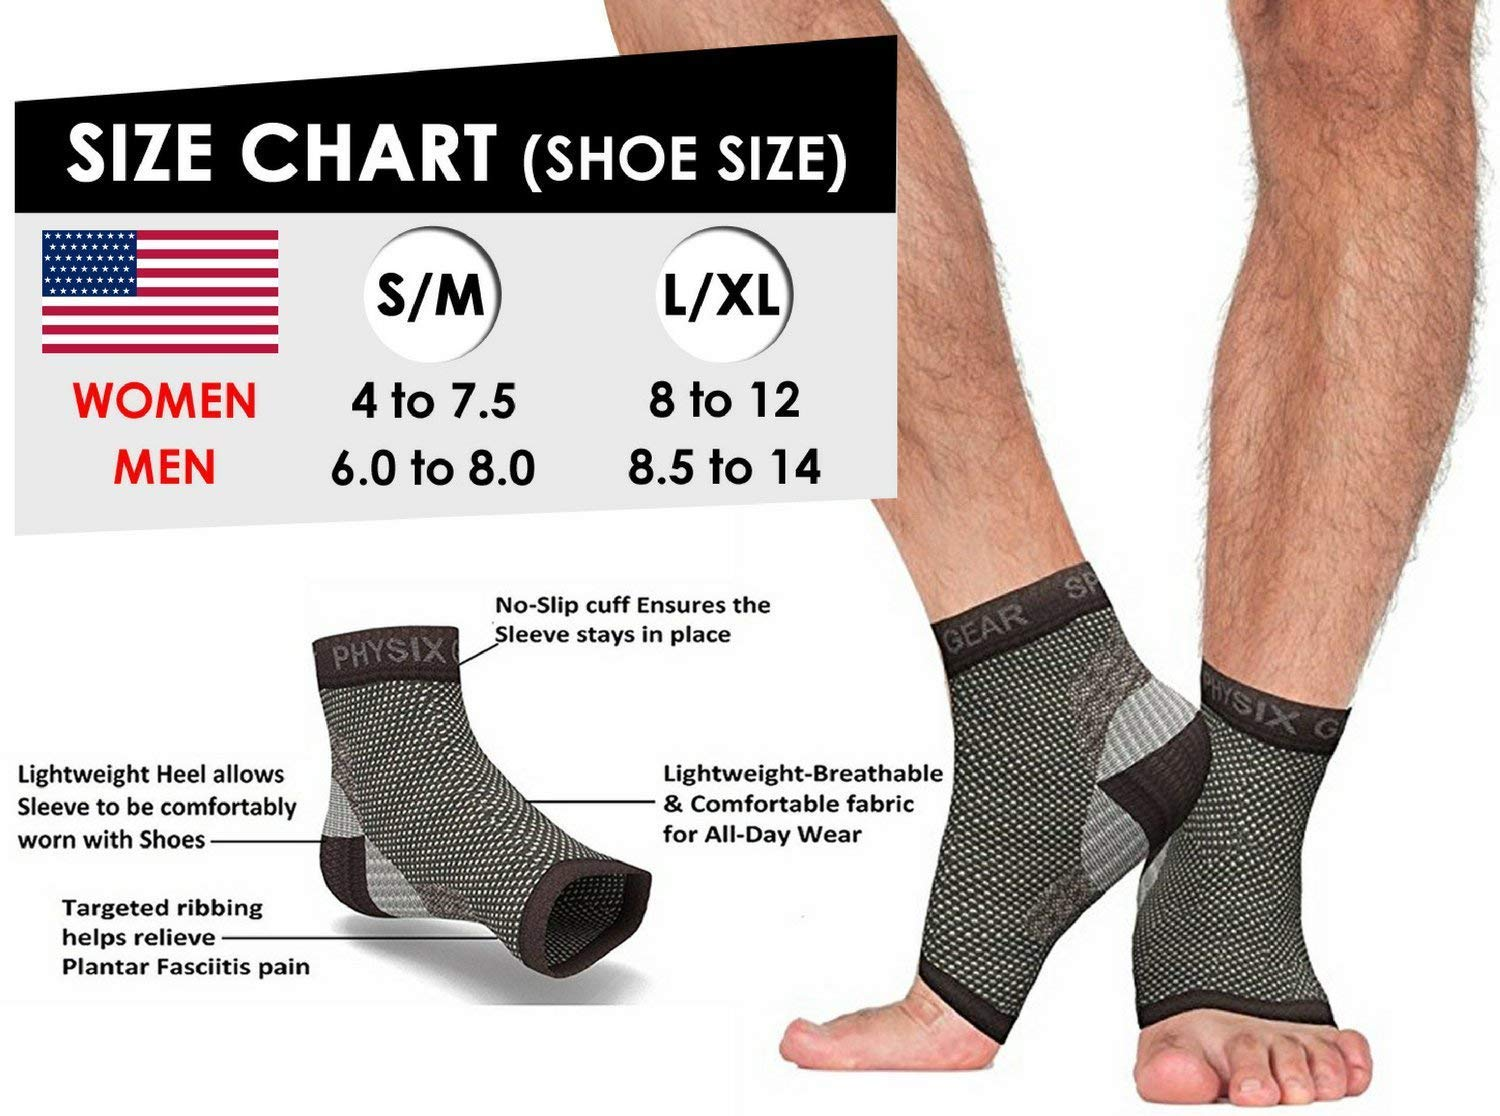 62babb812db Amazon.com  Plantar Fasciitis Socks with Arch Support for Men   Women -  Best 24 7 Compression Socks Foot Sleeve for Aching Feet   Heel Pain Relief  - Washes ...